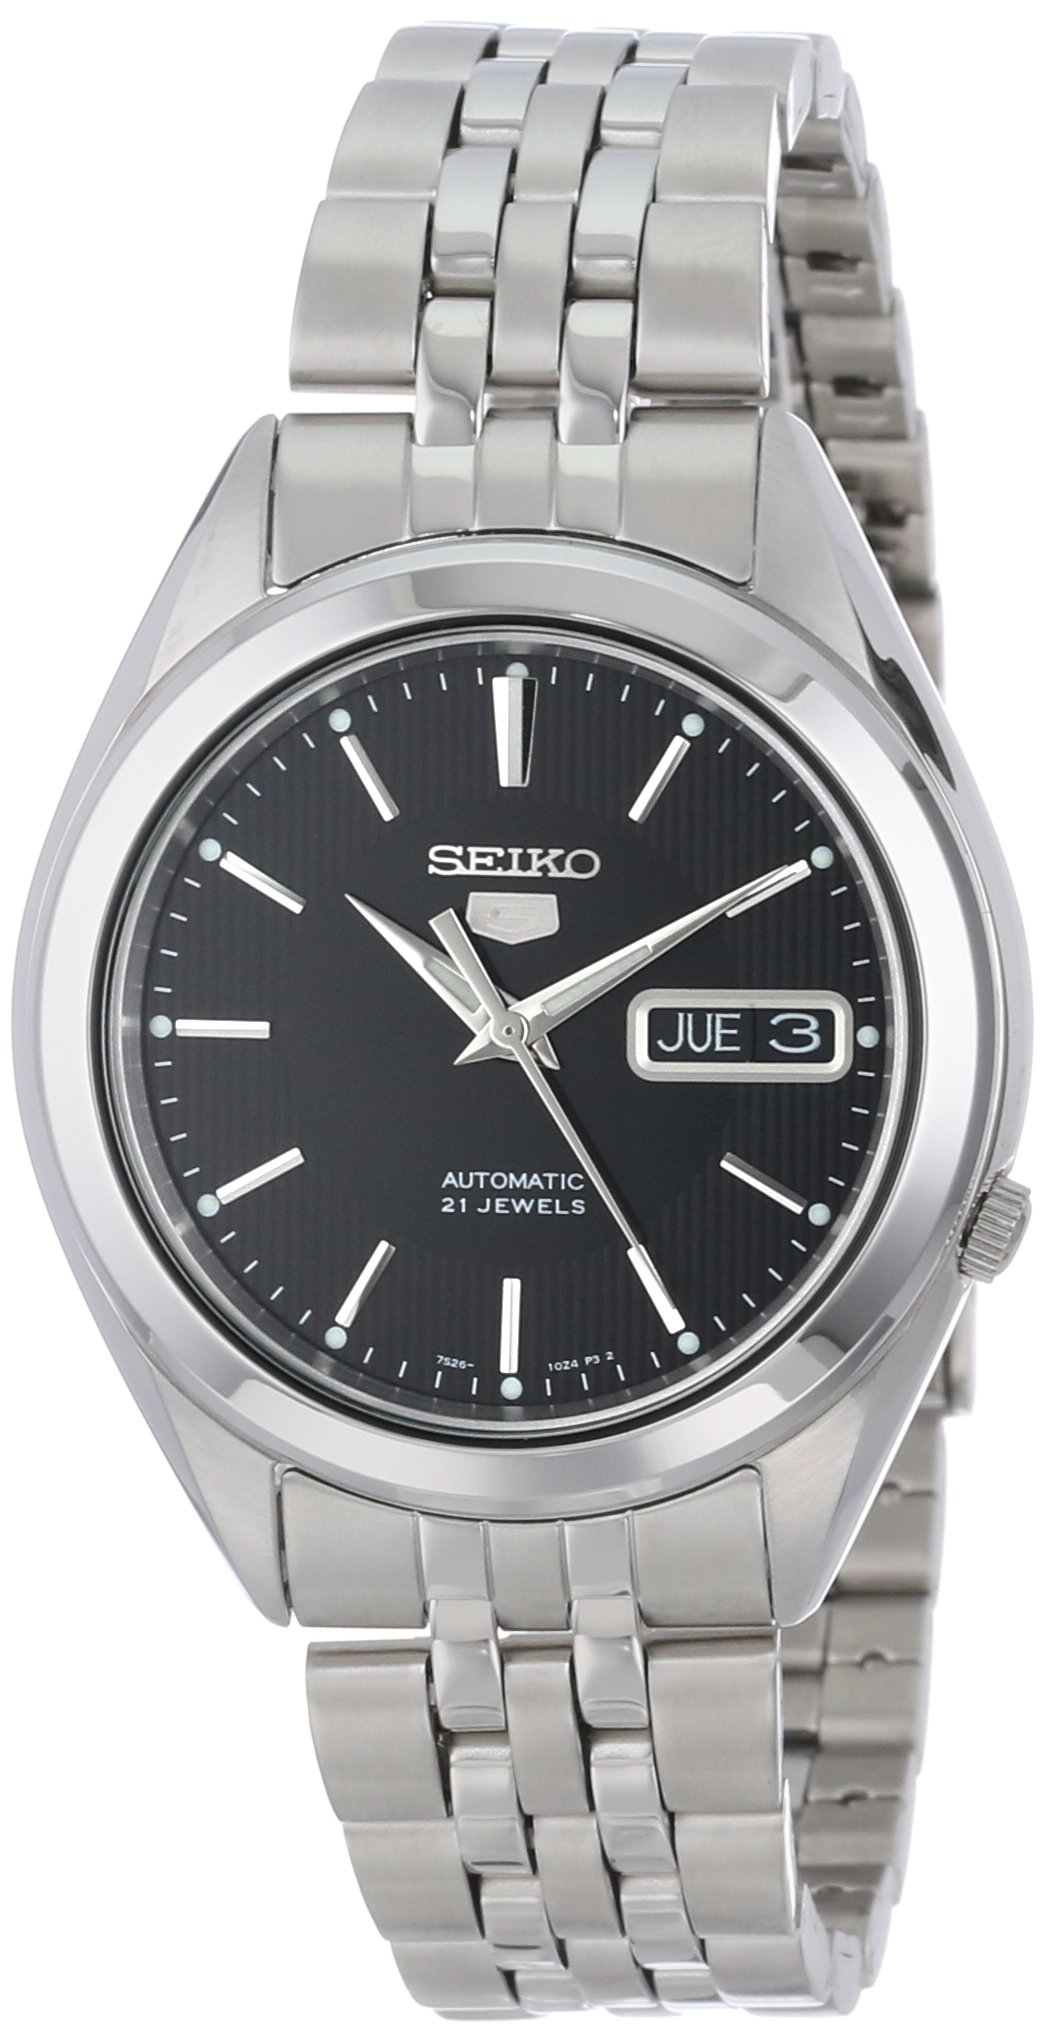 5 Men's SNKL23 Stainless Steel Automatic Casual Watch